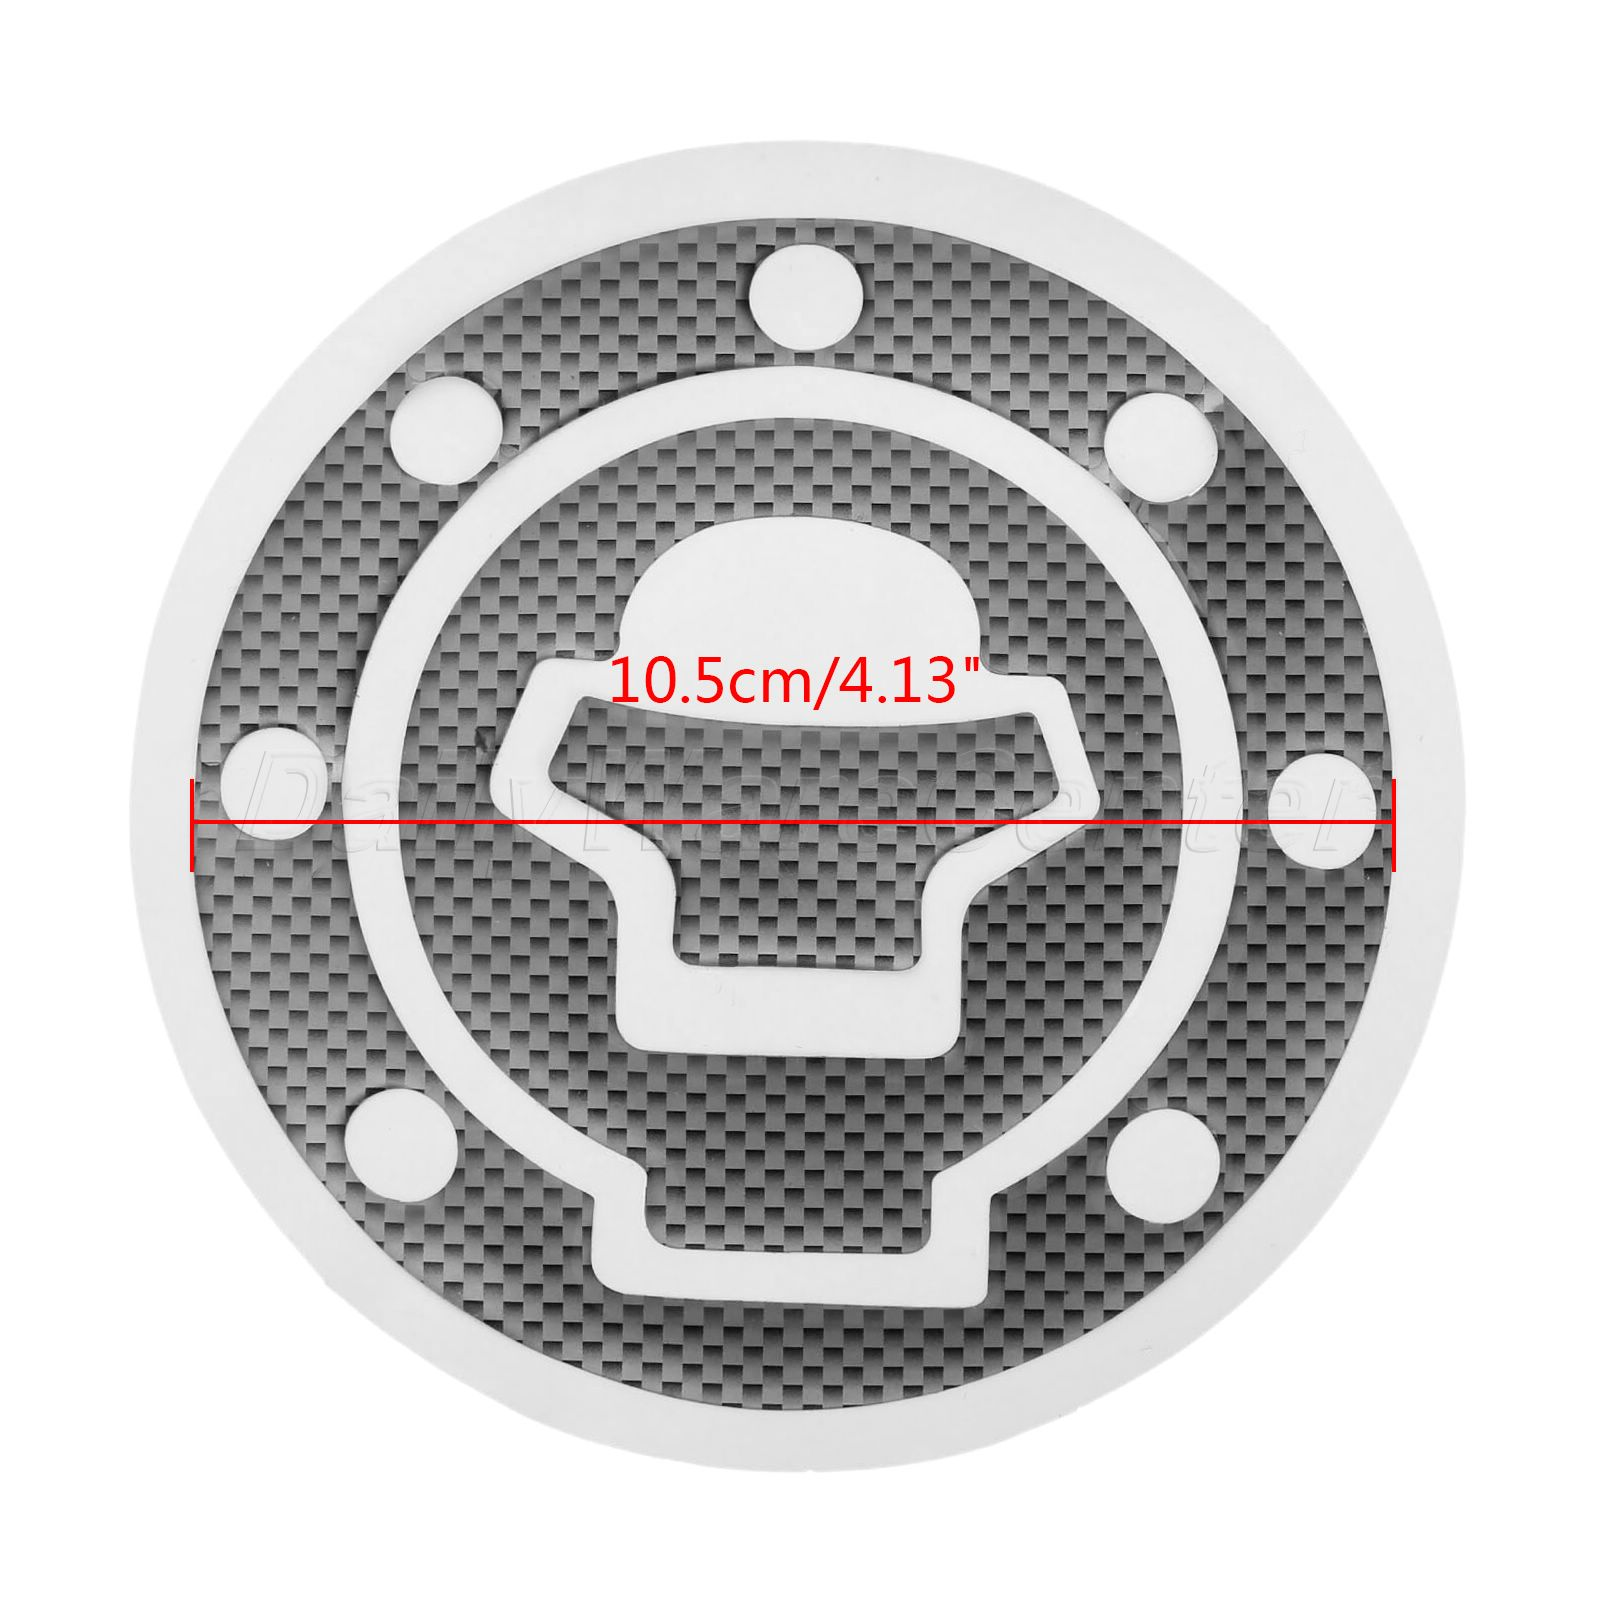 New 1X Motorcycel Decorate <font><b>Decal</b></font> Fuel Gas Cap Cover Pad <font><b>Sticker</b></font> for <font><b>Suzuki</b></font> GSXR600 <font><b>750</b></font> GSX-R 1000 GSX1400 TL1000R TL1000S KATANA image